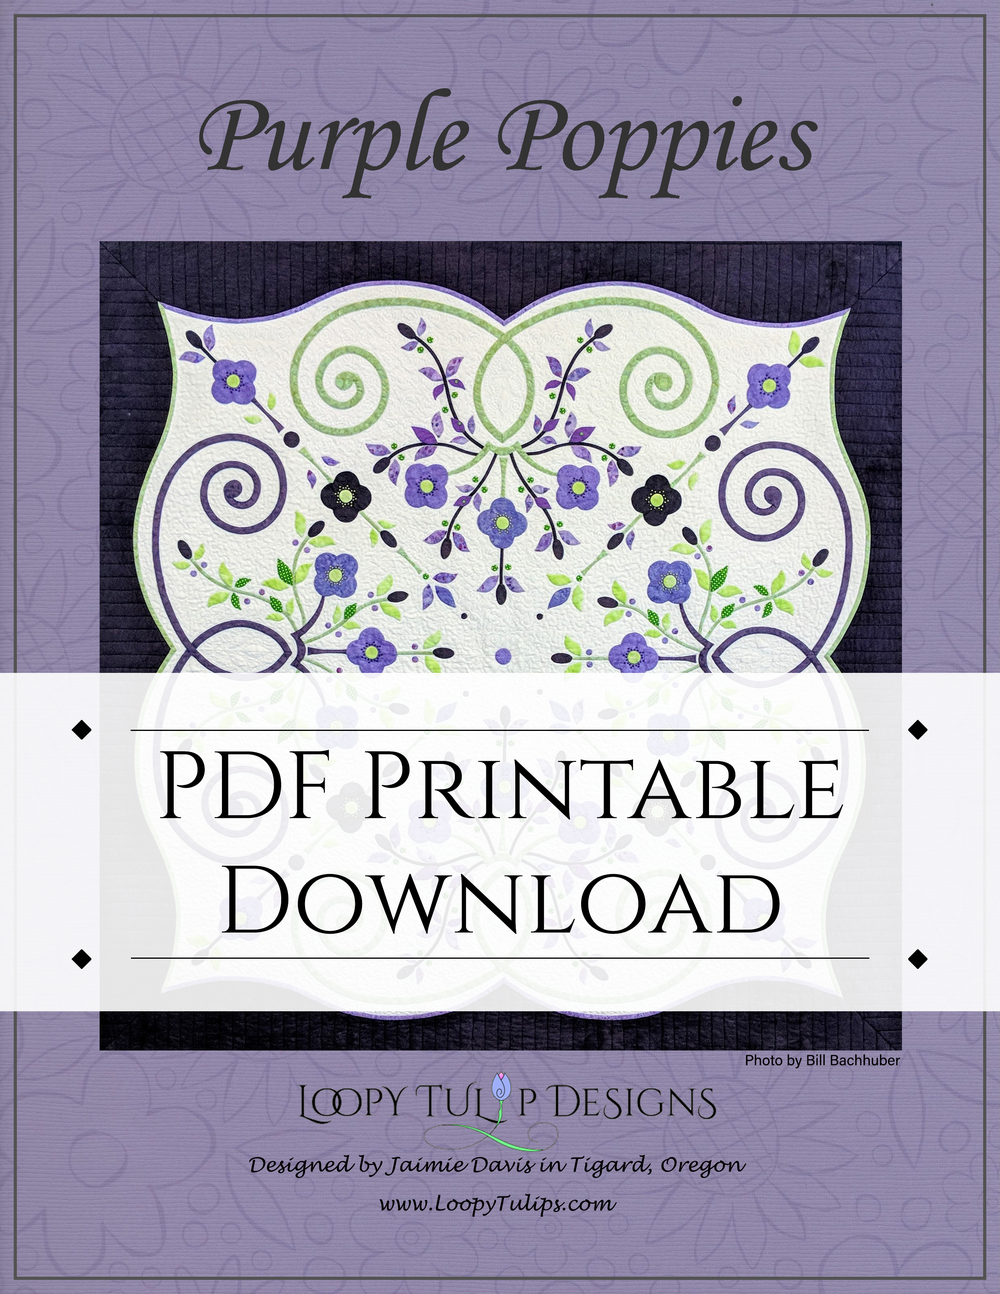 PP PDF Cover.png